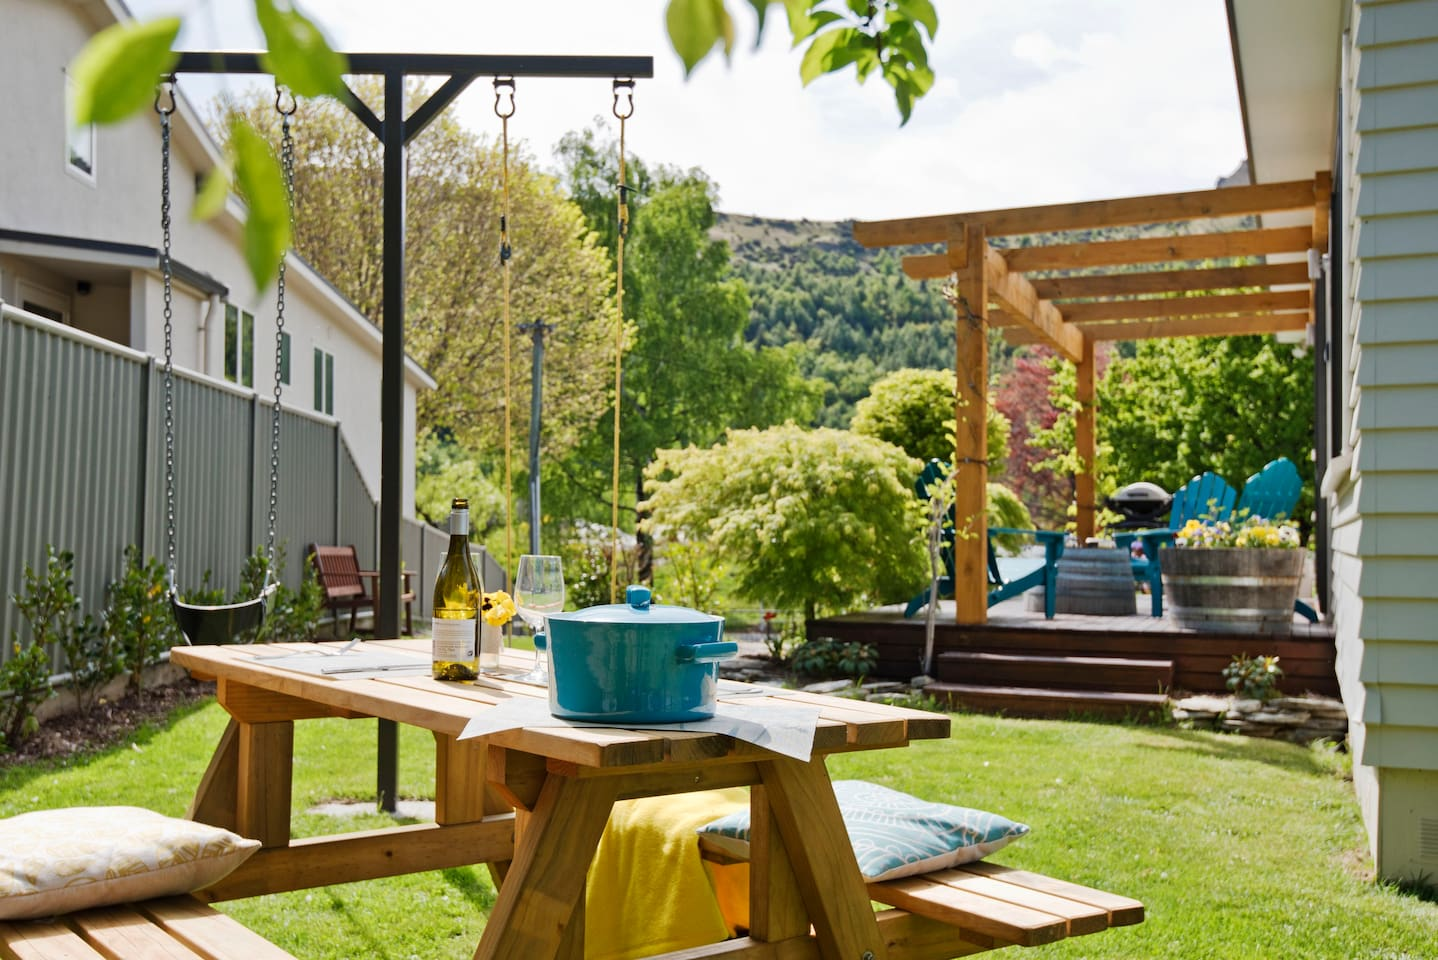 Enjoy a bbq out in the fenced  garden. The gate can be closed providing a safe place for your children to play with adult supervision of course.  A swing set is in the garden for little ones to use.